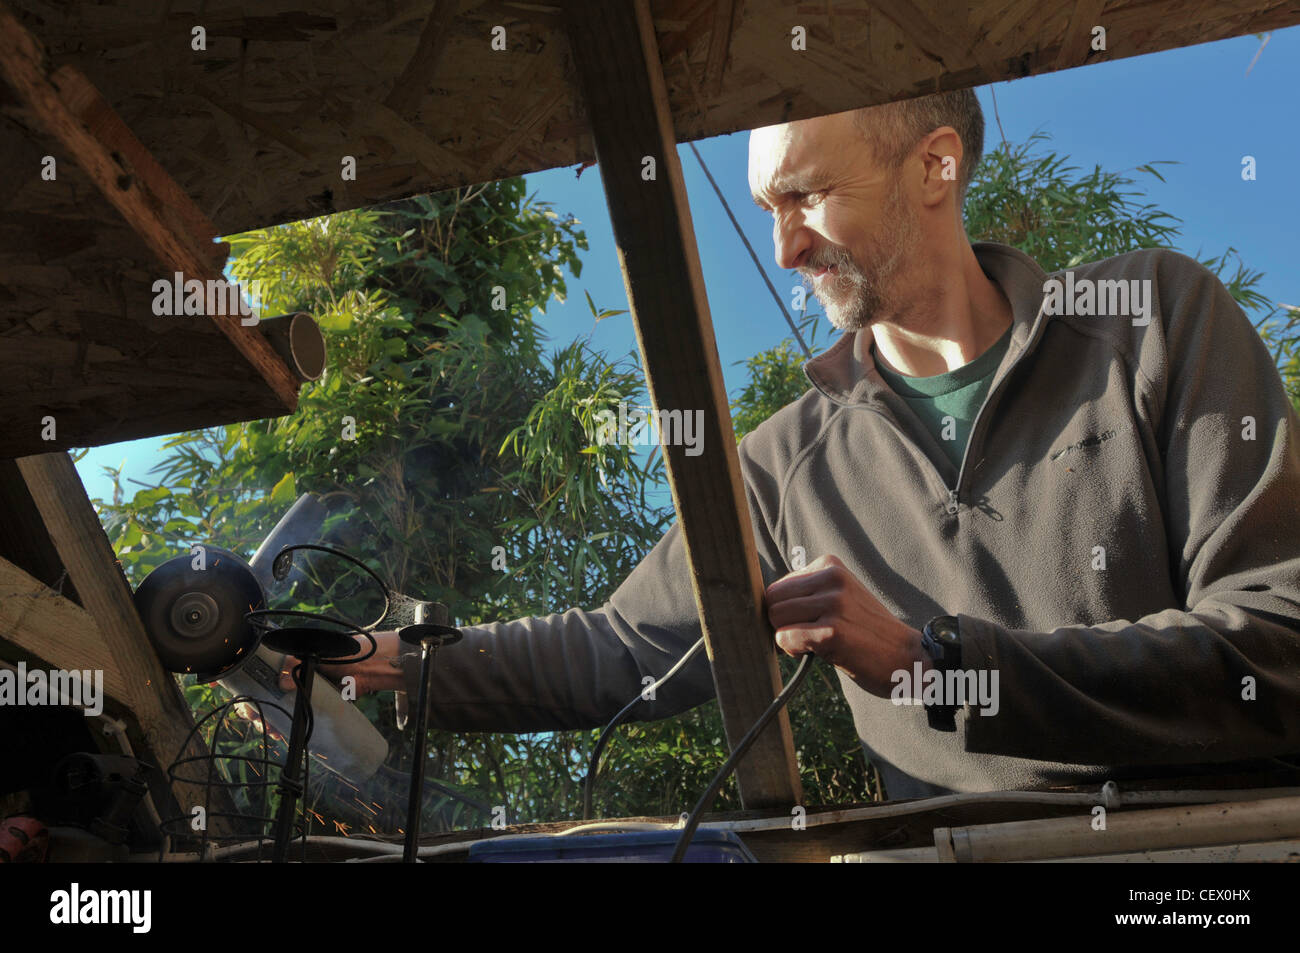 A man repairing the roof of his shed using a power tool - Stock Image